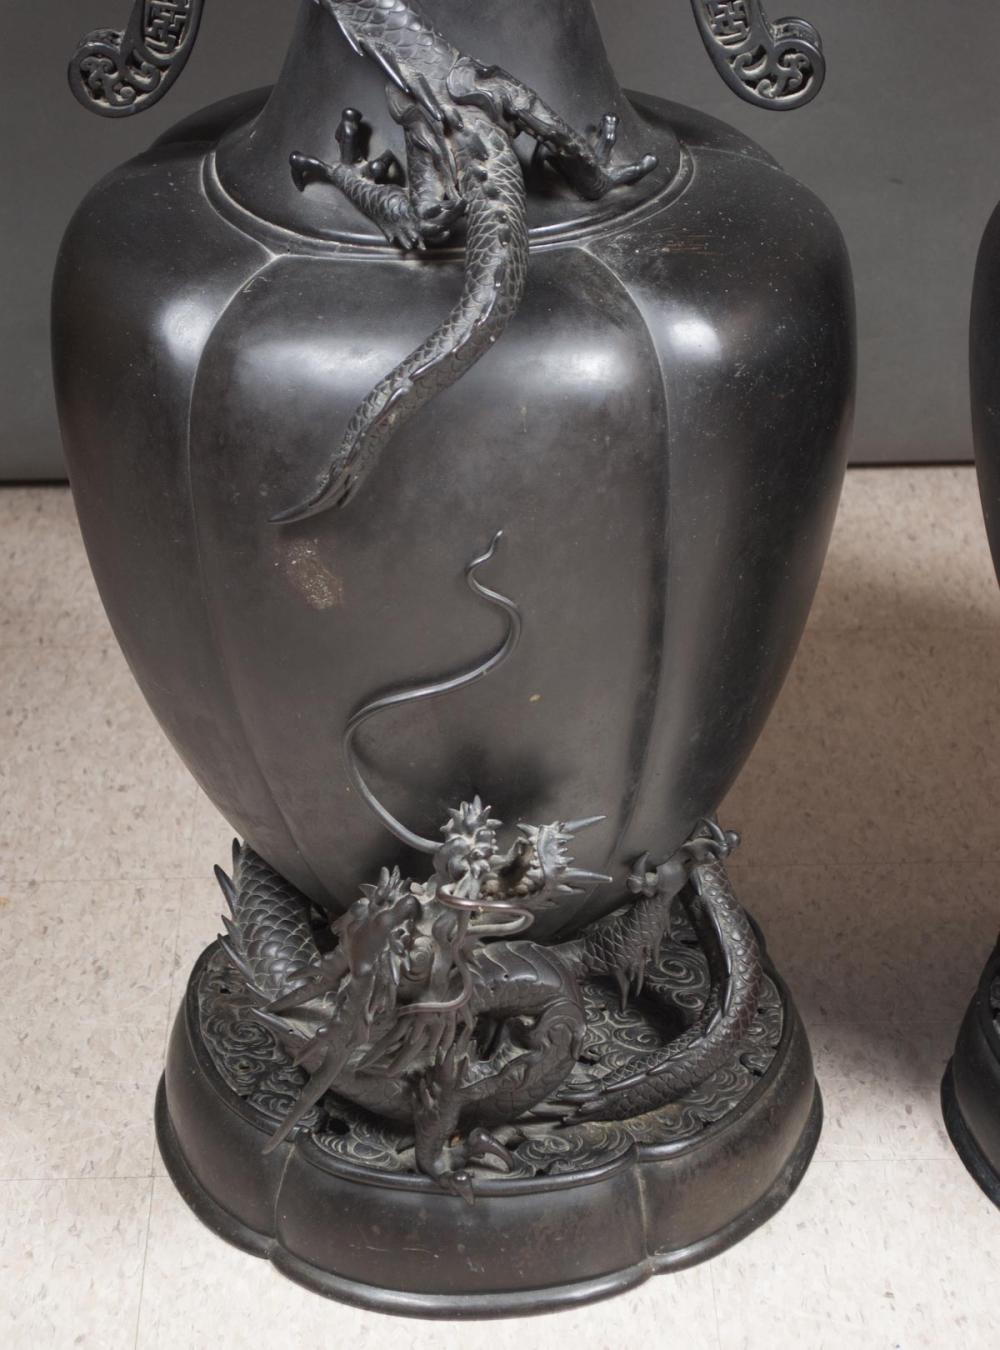 Lot 389: PAIR OF JAPANESE EXPORT BRONZE DRAGON FLOOR VASES,